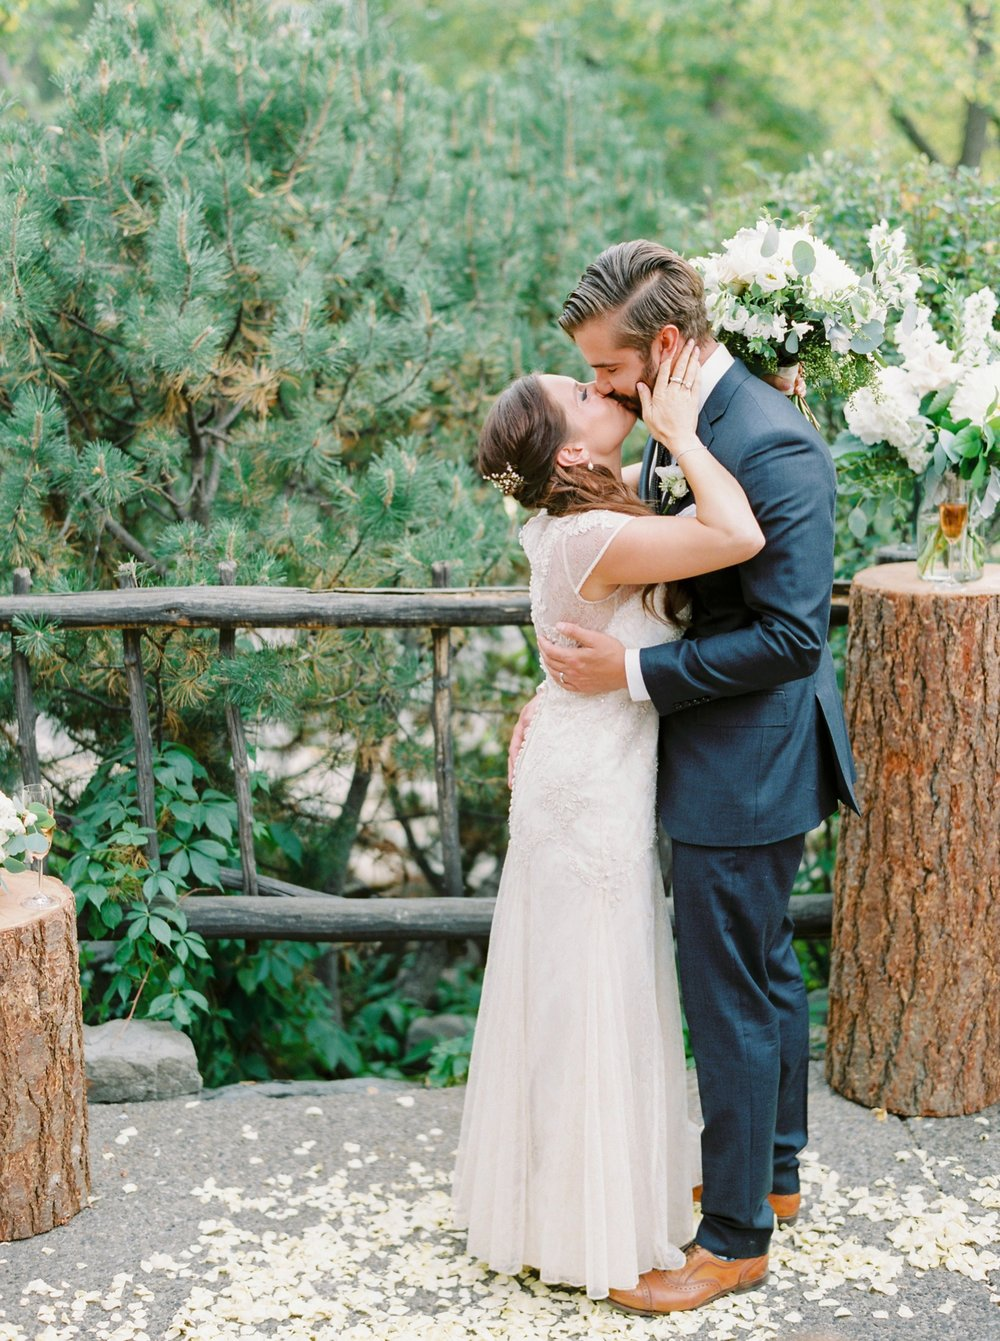 Calgary wedding photographers | fine art film | Justine Milton Photography | wedding inspiration | wedding chairs | wedding flowers | wedding ceremony | bride and groom | kiss the bride